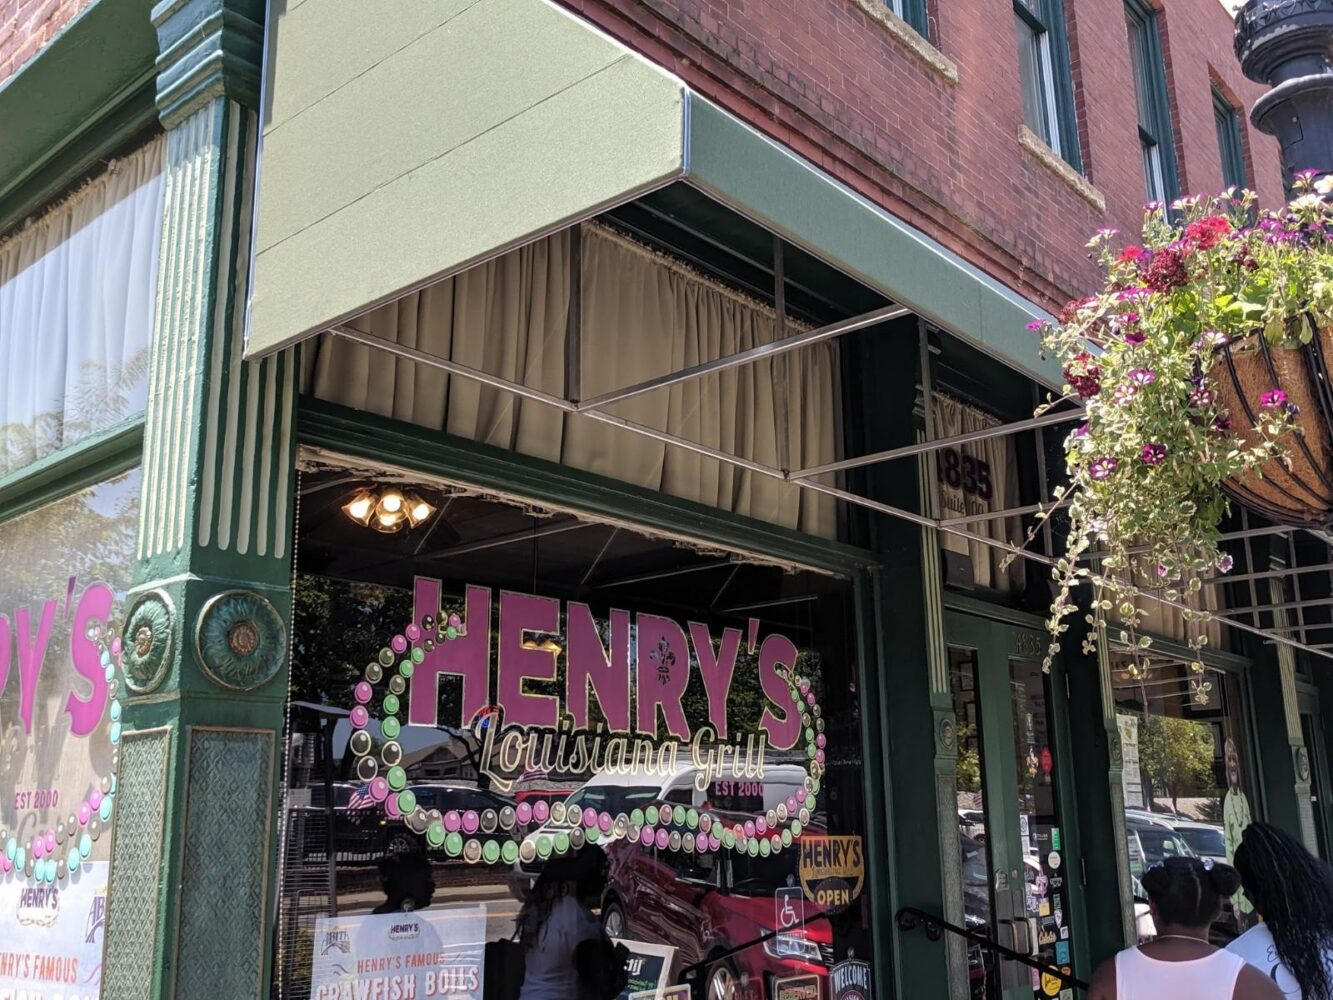 Henry's Acworth Georgia Restaurant Awning